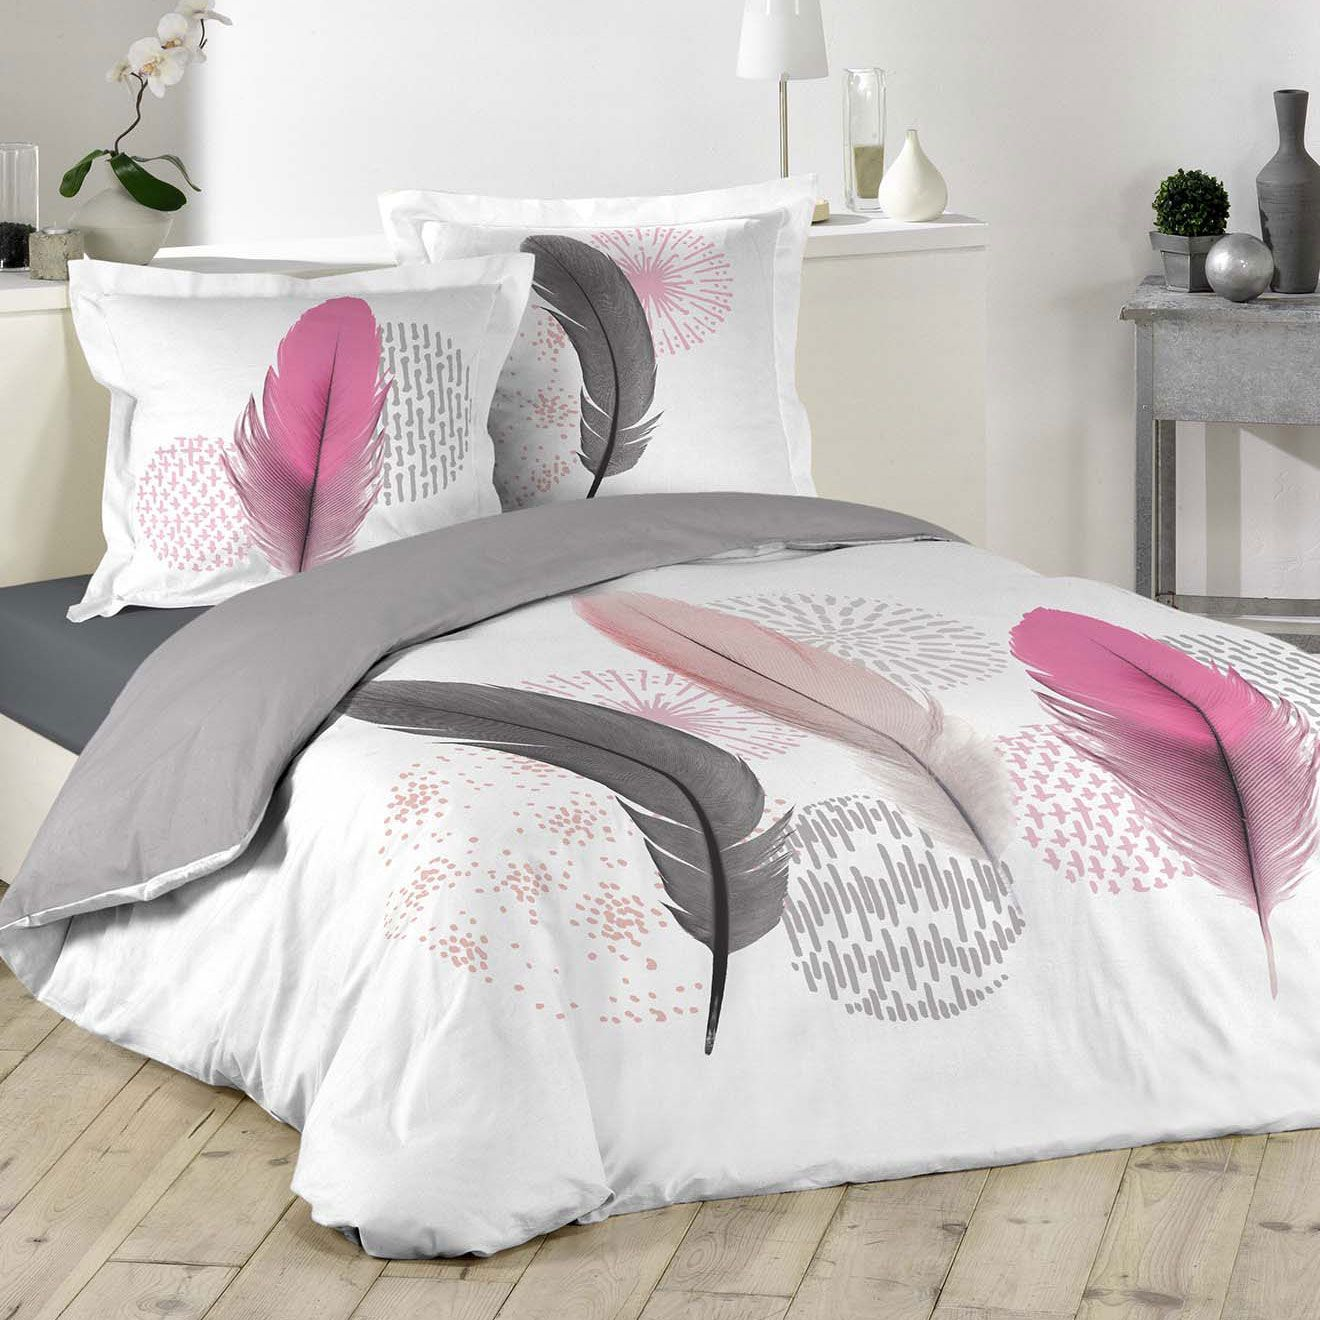 housse de couette et deux taies pink dream 100 coton 240 cm rose p le housse de couette. Black Bedroom Furniture Sets. Home Design Ideas